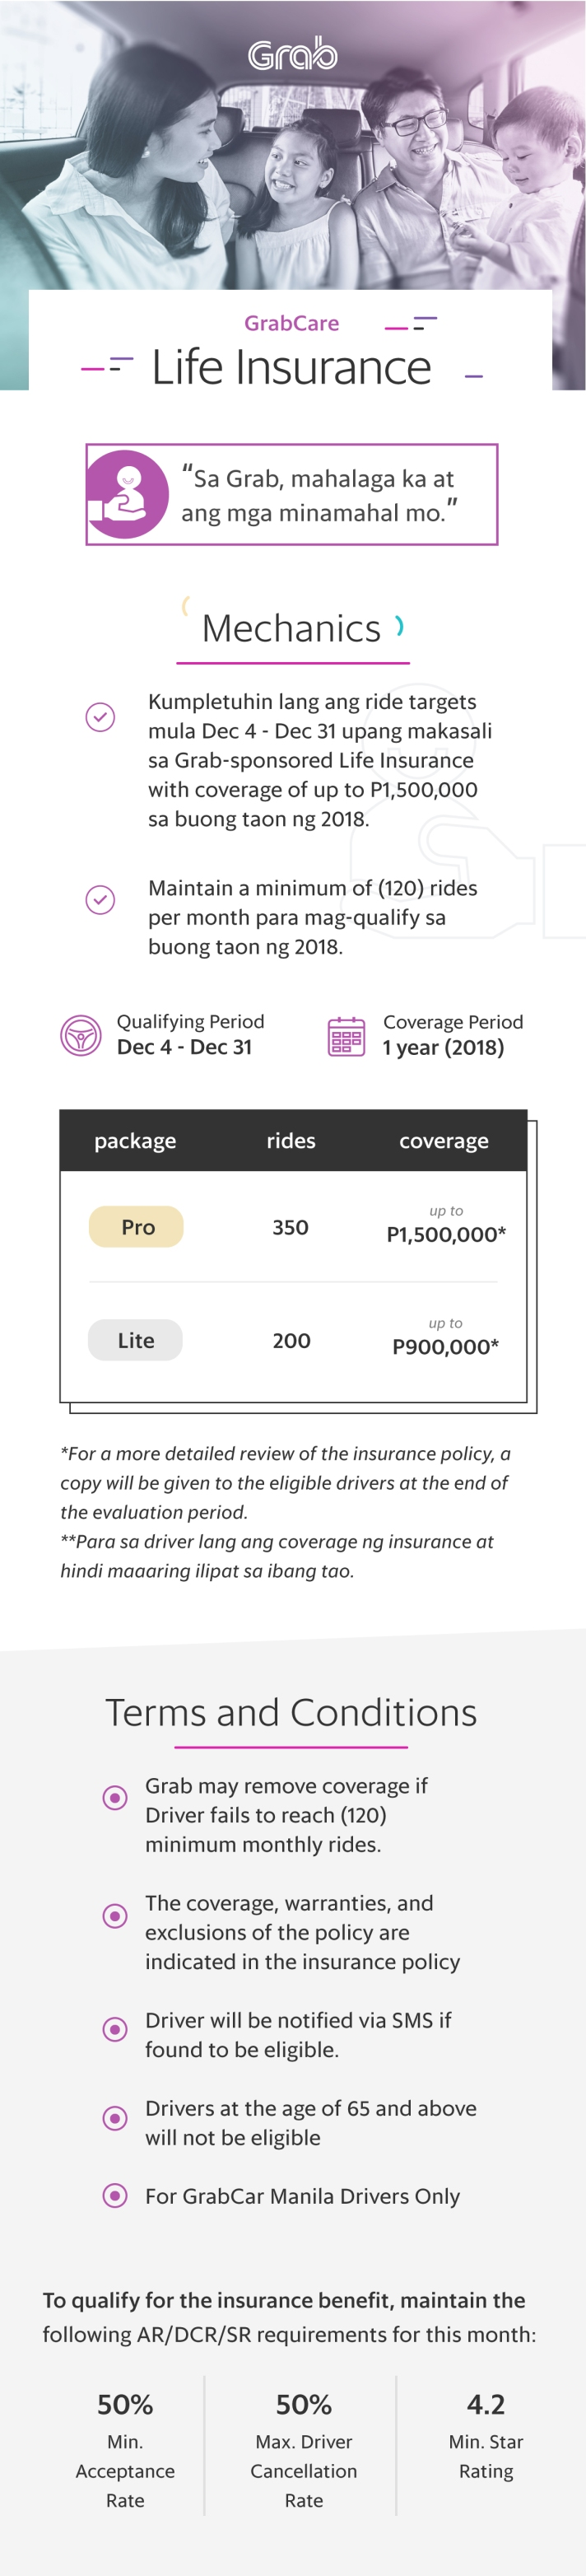 life-insurance-updated